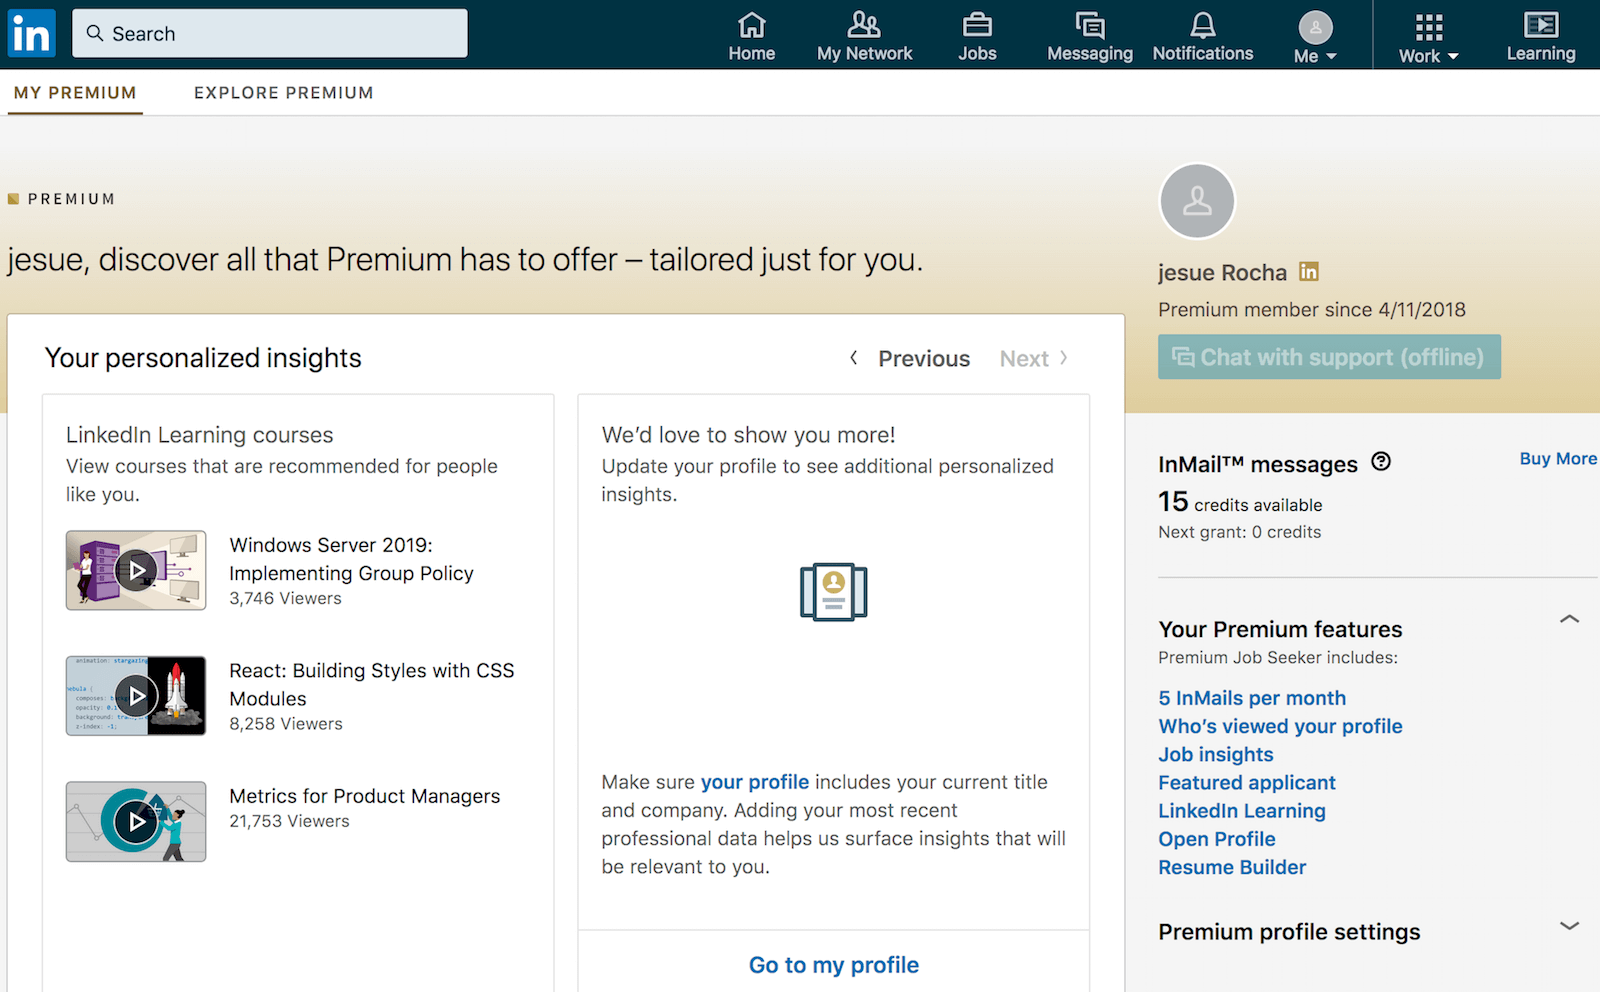 LinkedIn premium: best features is LinkedIn Learning